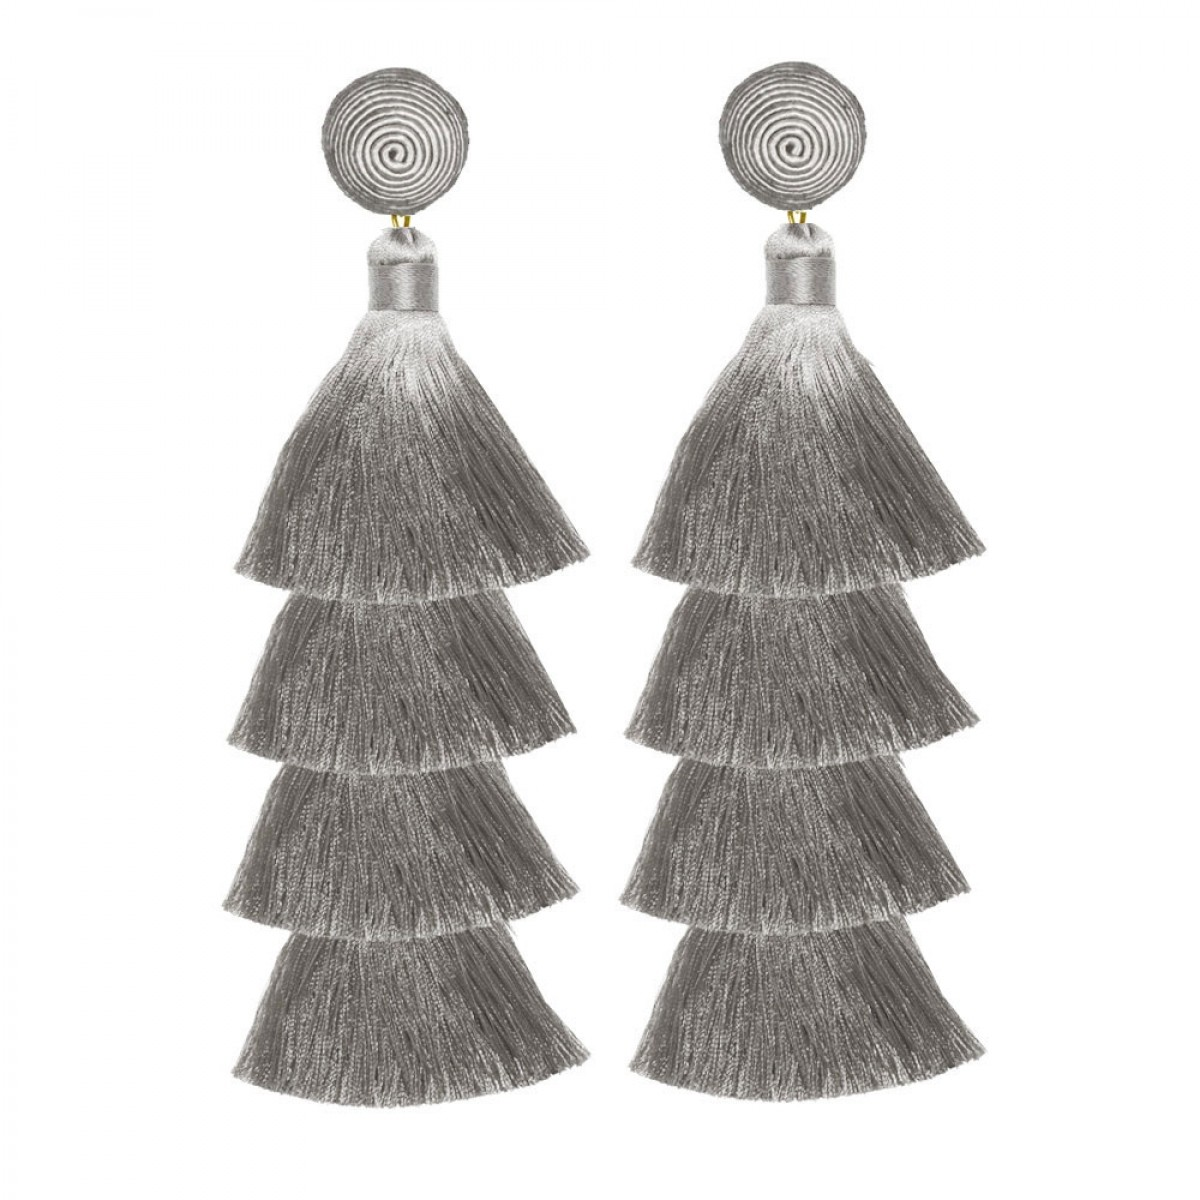 Grey Tiered Tassel Earrings by SUZANNA DAI